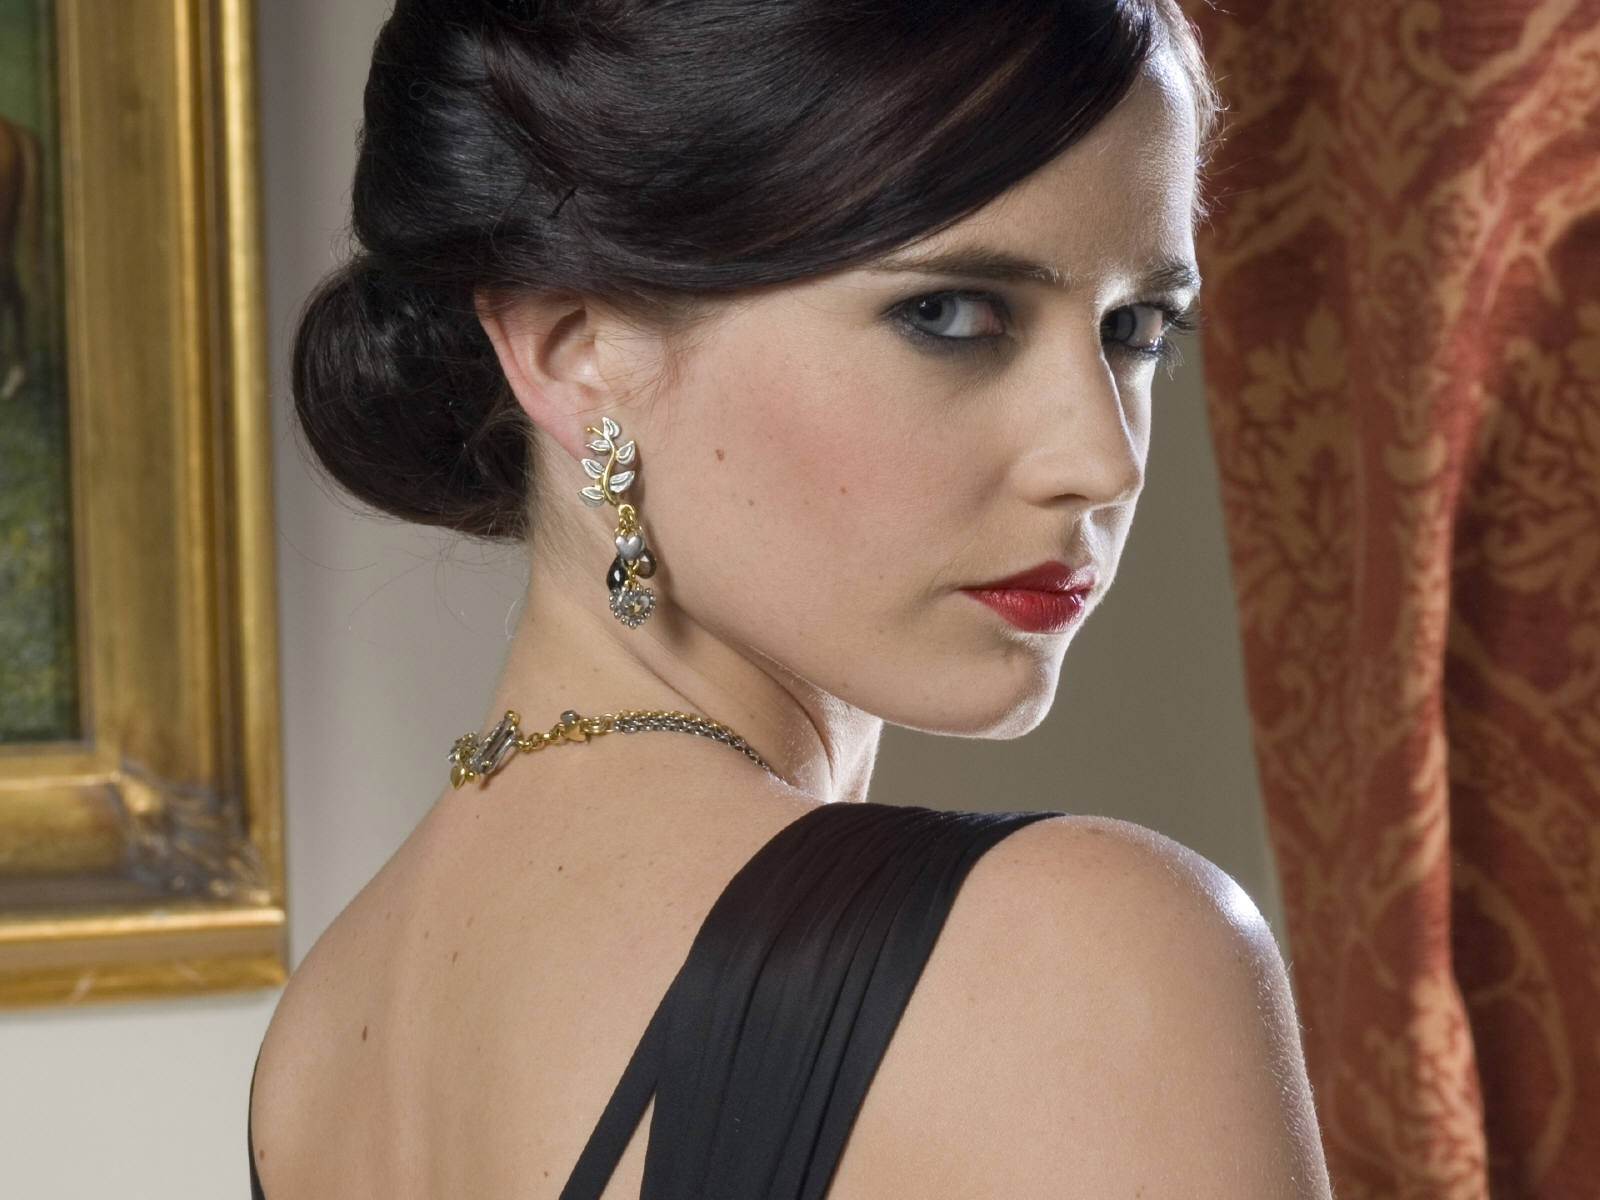 Wallpaper di Eva Green di spalle